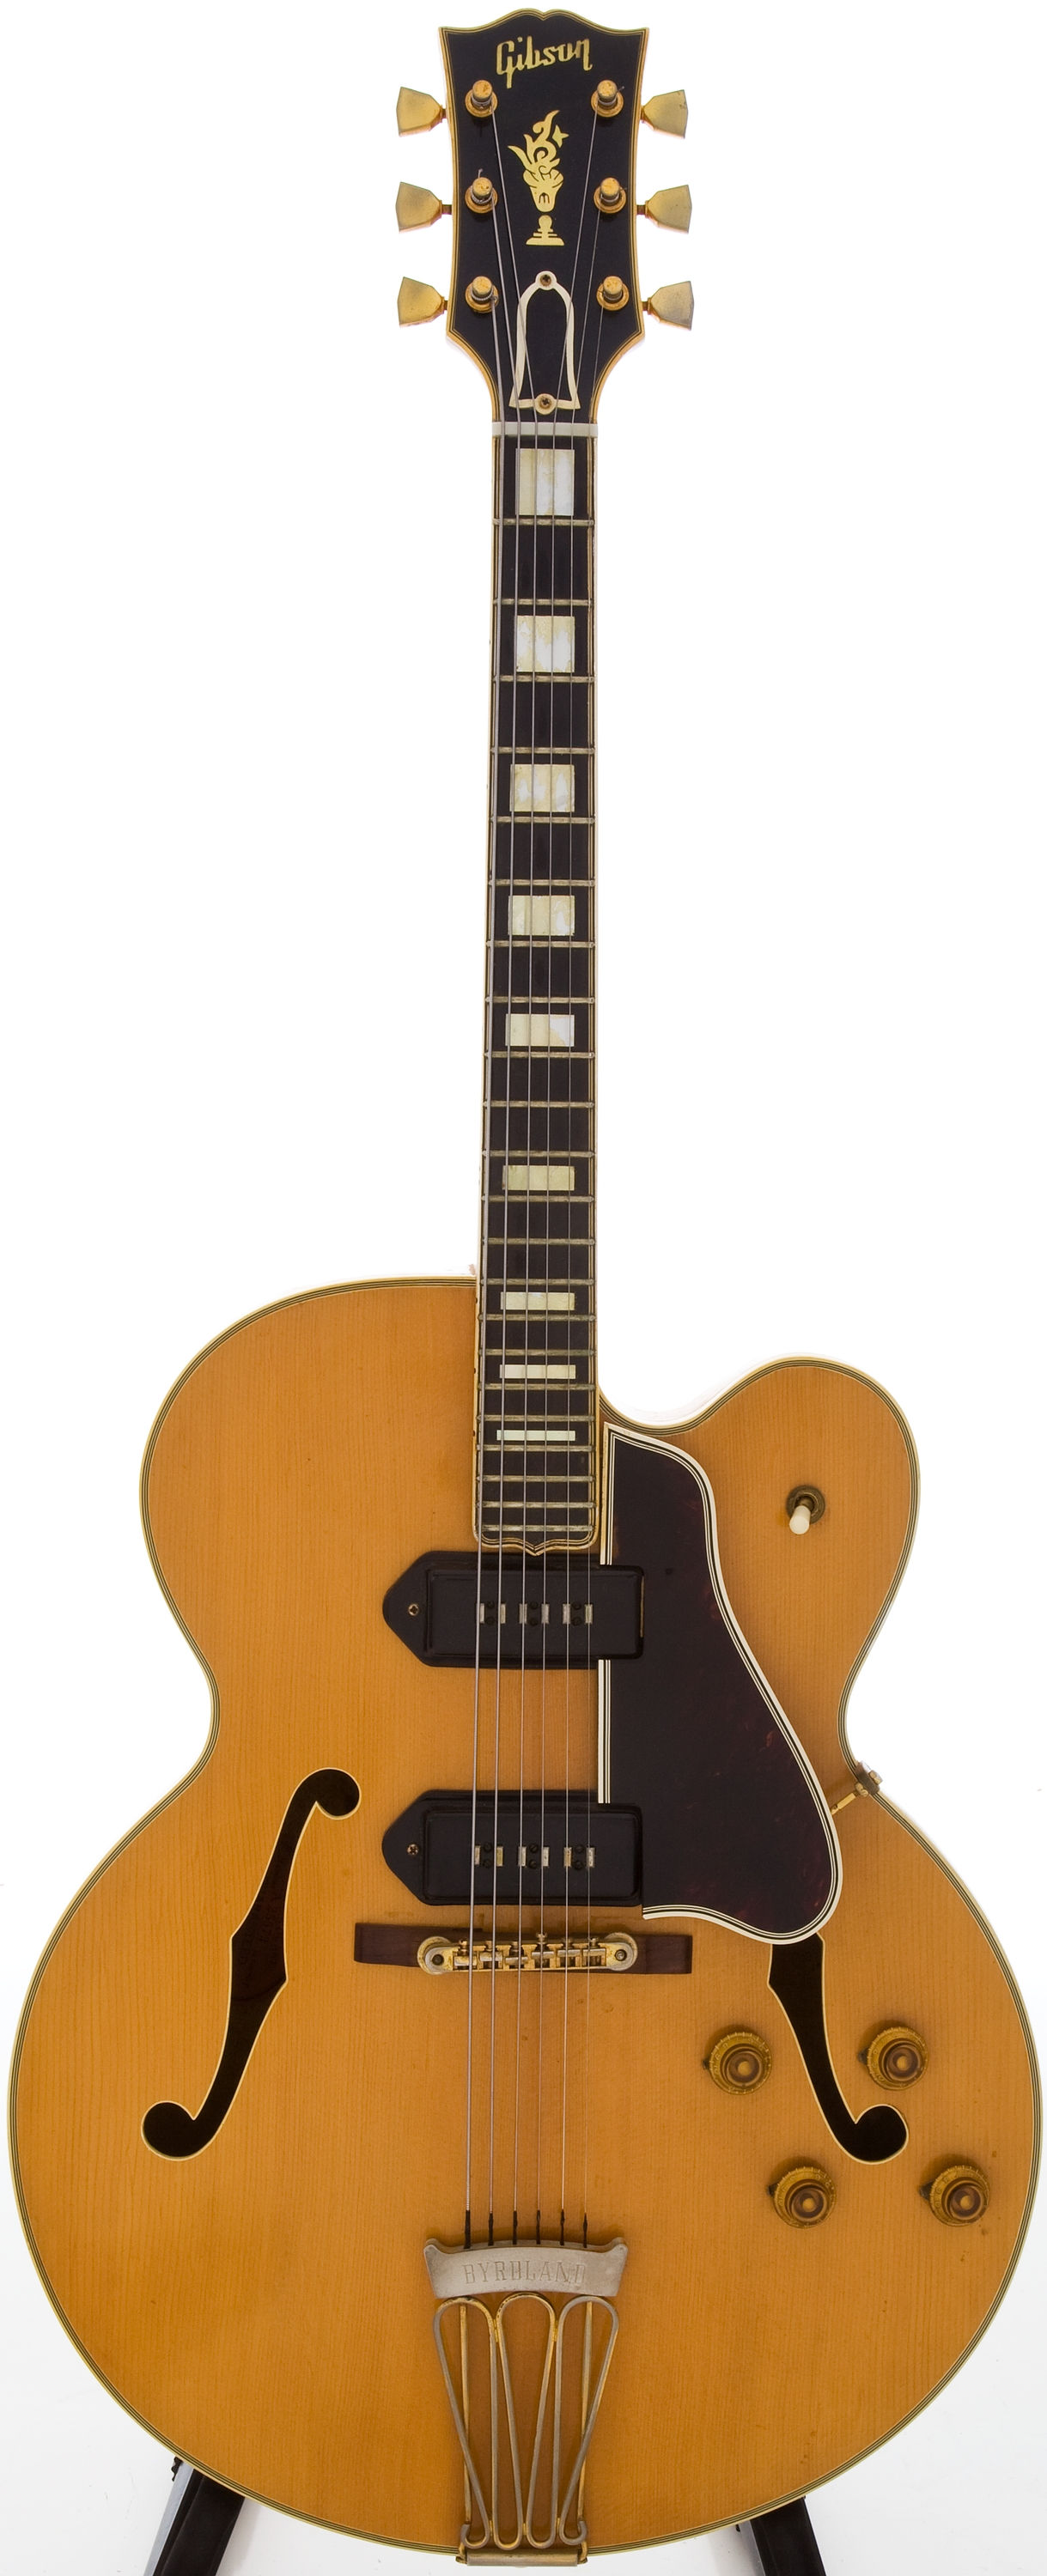 1957 gibson byrdland natural blonde guitars electric semi hollow body southworth guitars. Black Bedroom Furniture Sets. Home Design Ideas